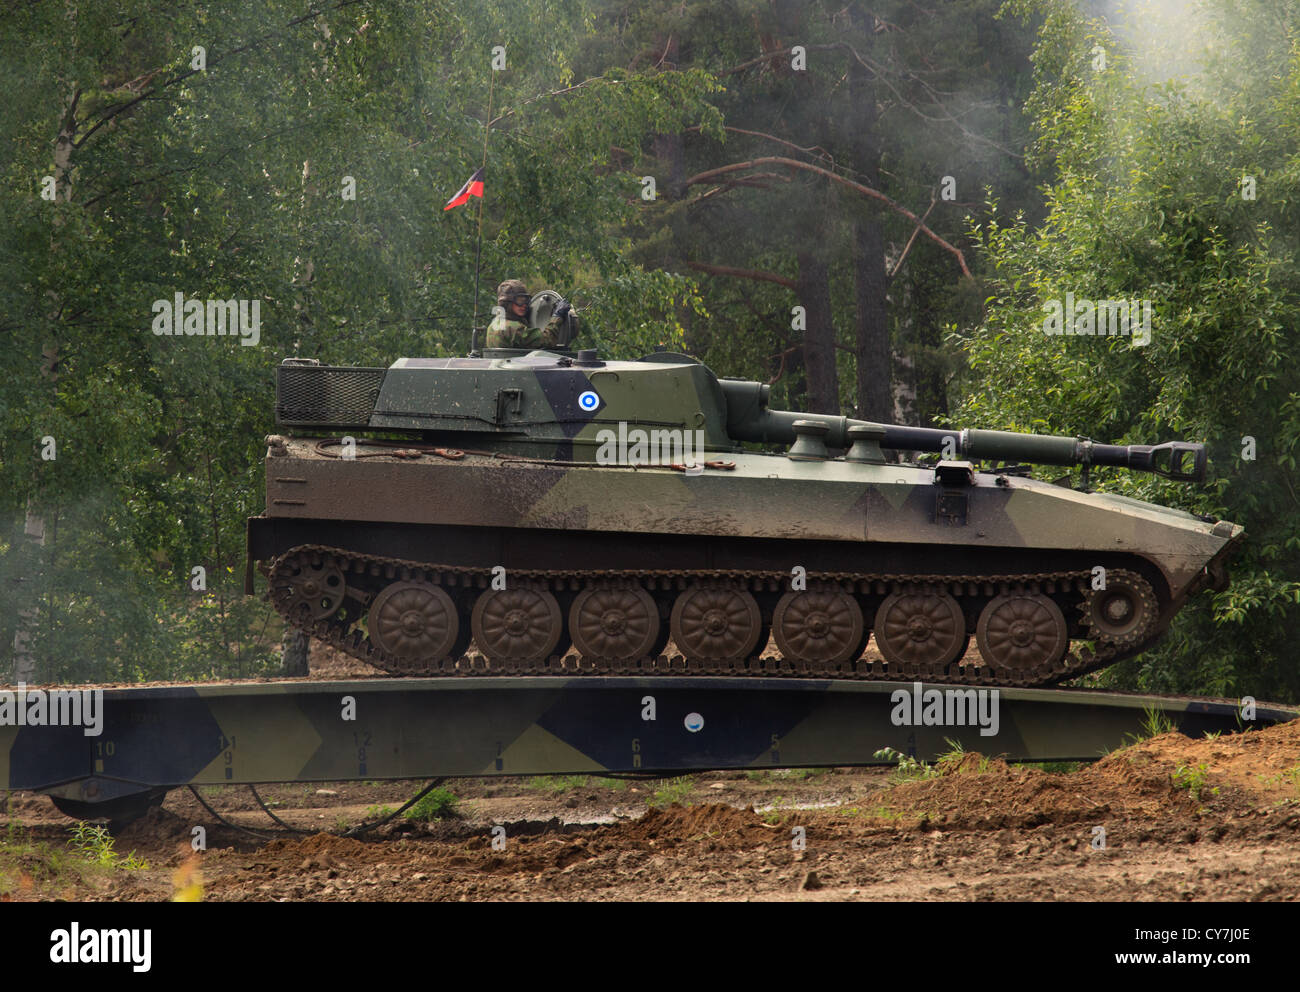 Self-propelled 2S1 howitzer of the Finnish Army crossing a bridge - Stock Image